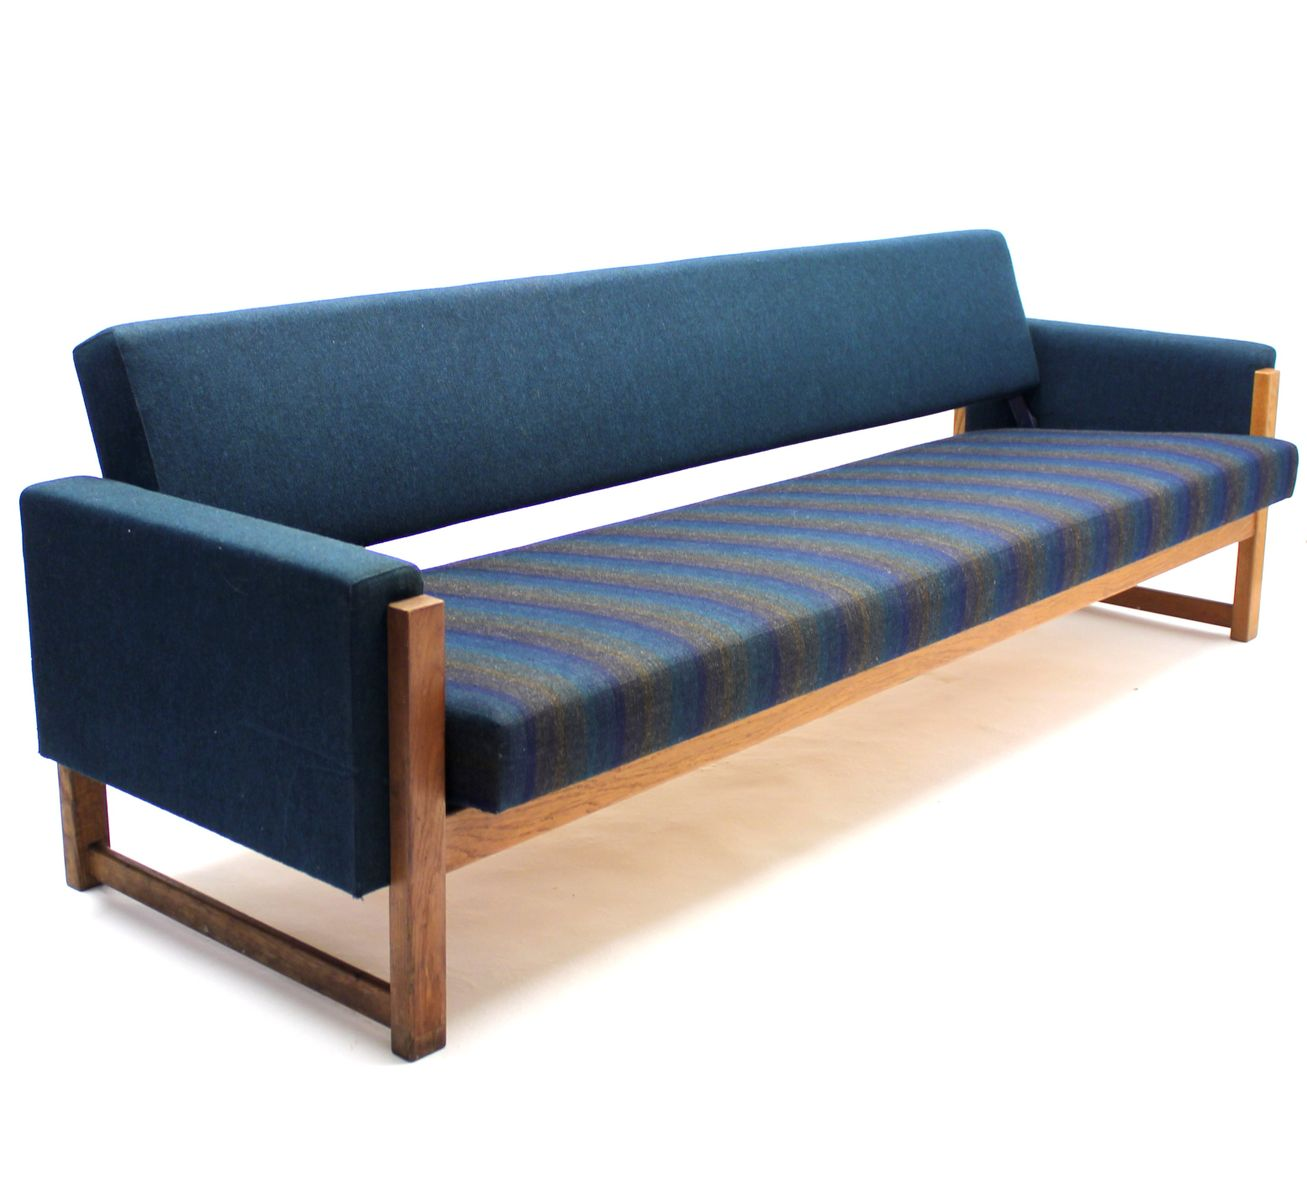 Sofa bed by yngve ekstr m for broby industri ab 1960s for for Sofa bed 4 6